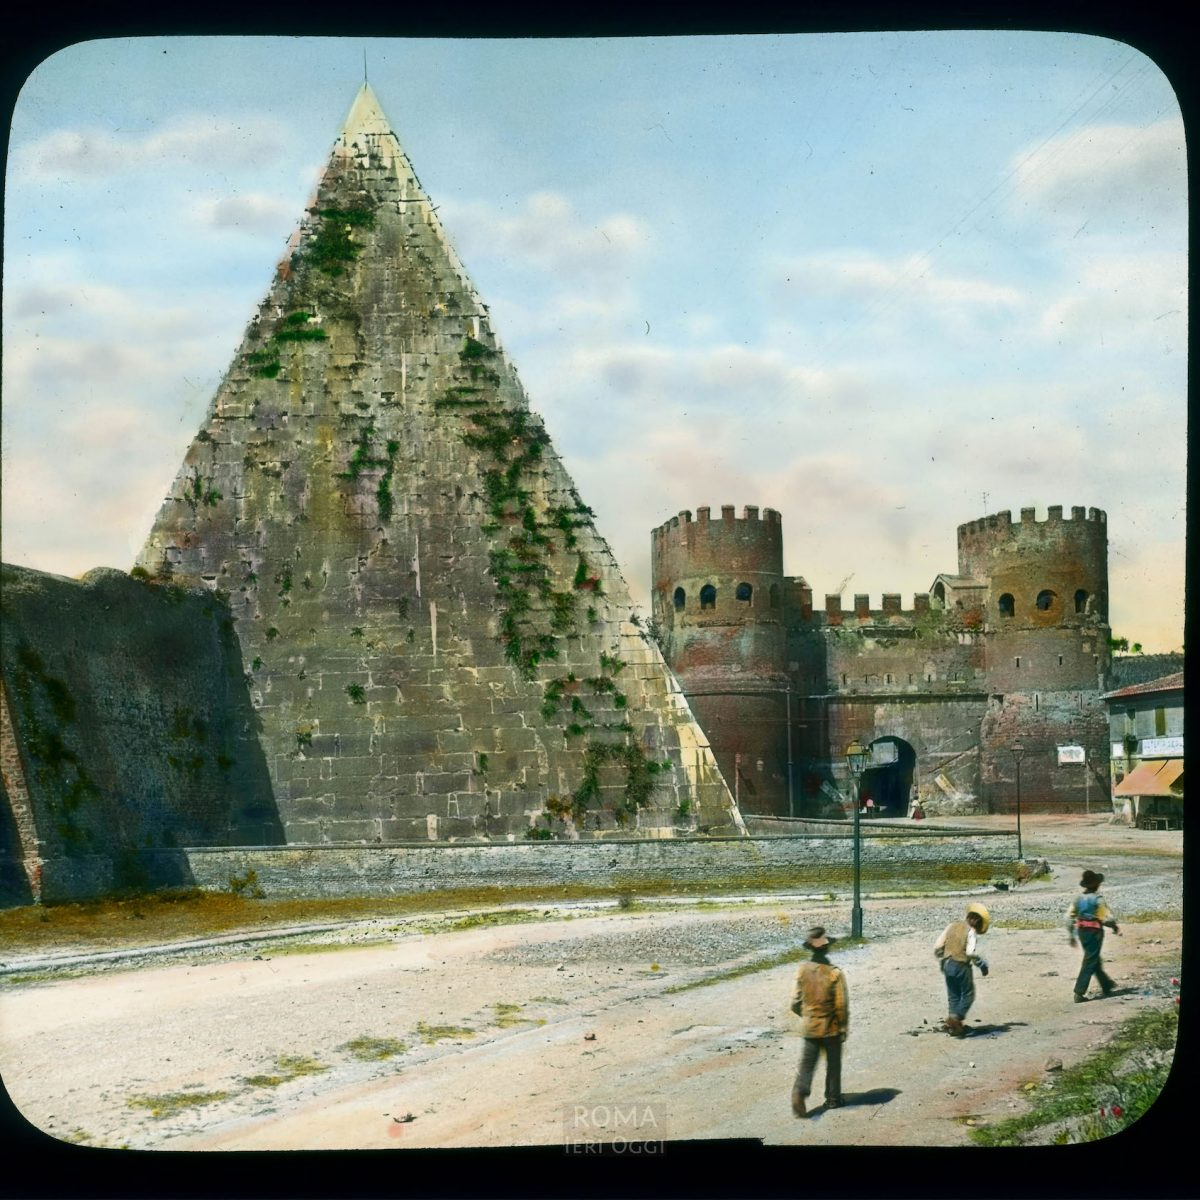 Rome. Pyramid of Caius Cestius: view with Porta San Paolo in the background View in tinted lantern slide, ca. 1919-1938. The pyramid dates from ca. 18-12 B.C.E. The gate dates from the 3rd century, with enlargements in the 6th century.